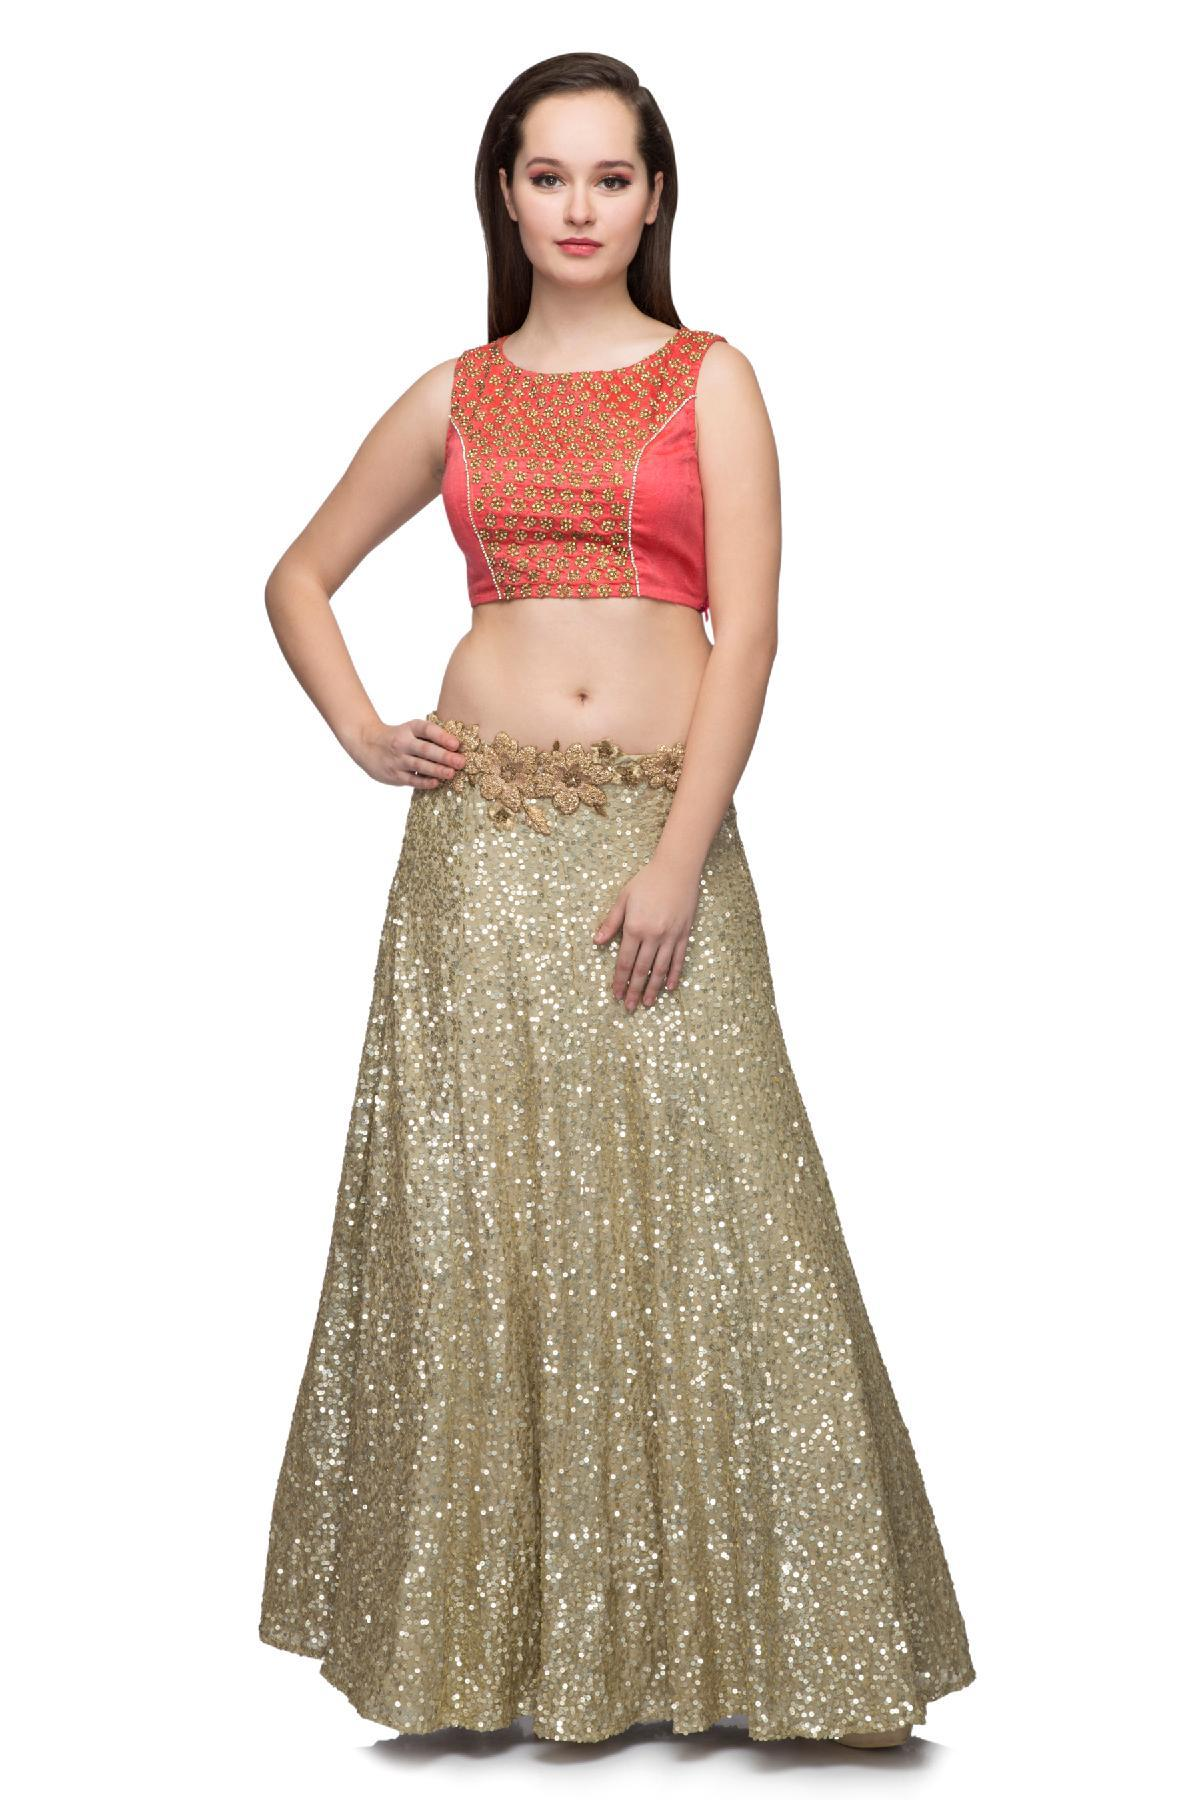 967d3c14e1490 Gold   Coral Crop Top   Skirt by Ministry of Design for rent online ...